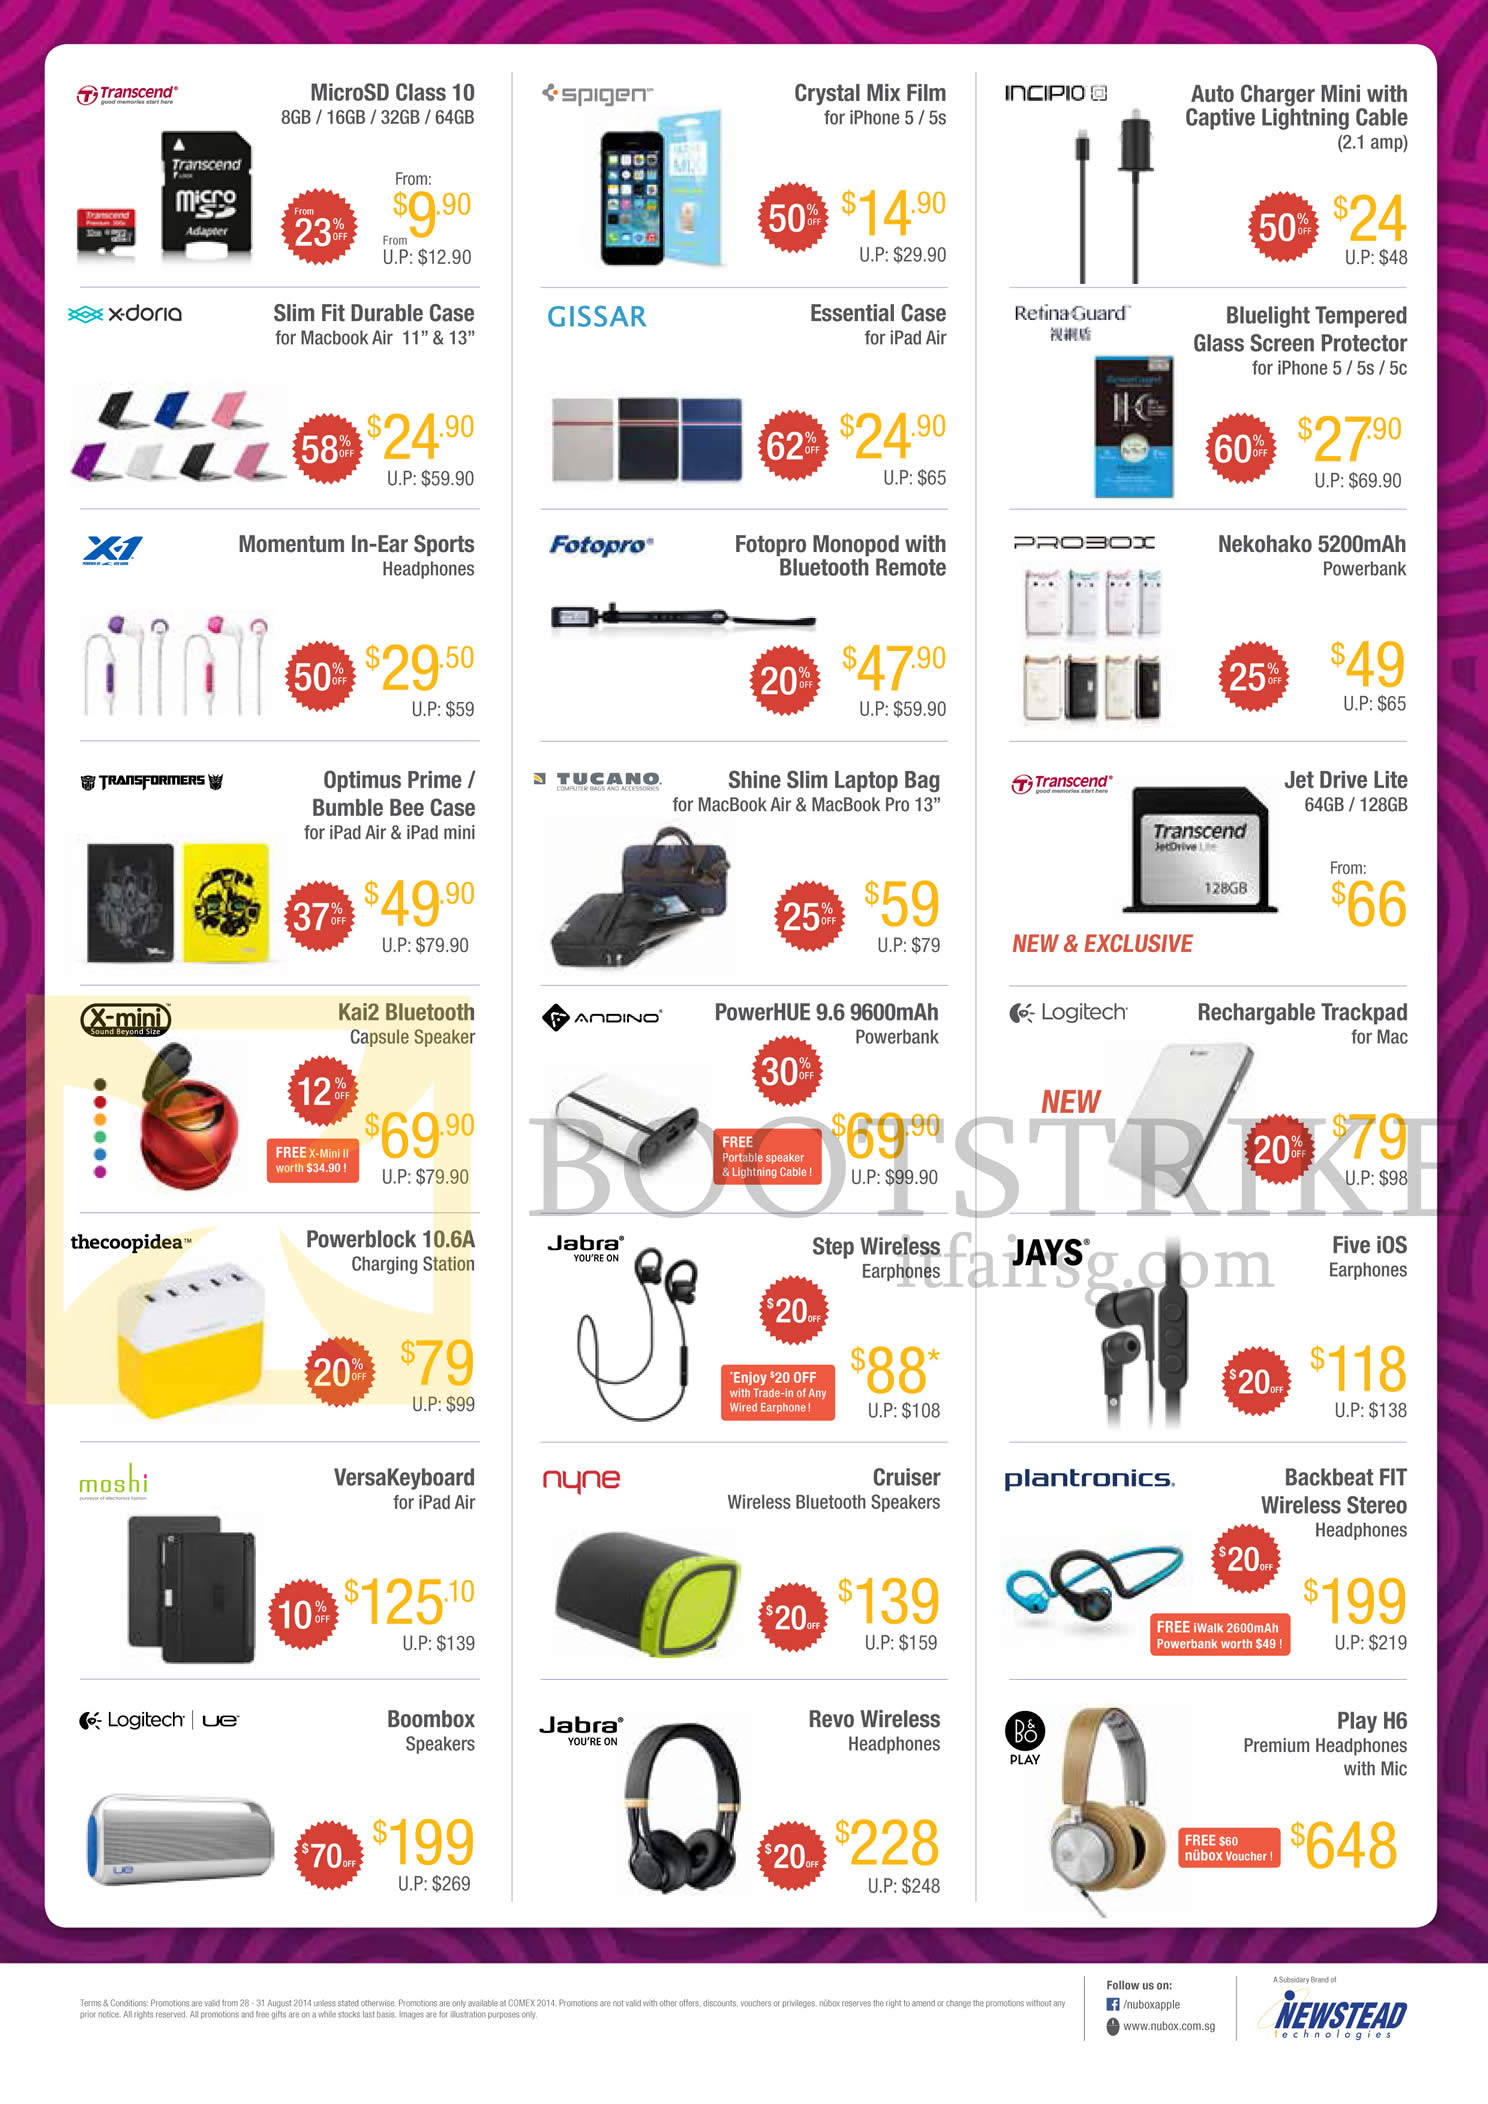 COMEX 2014 price list image brochure of Nubox Accessories SD Cards, Cases, Headphones, Speakers, Keyboard, Earphones, Powerbanks, Screen Protectors, Lightning Cables